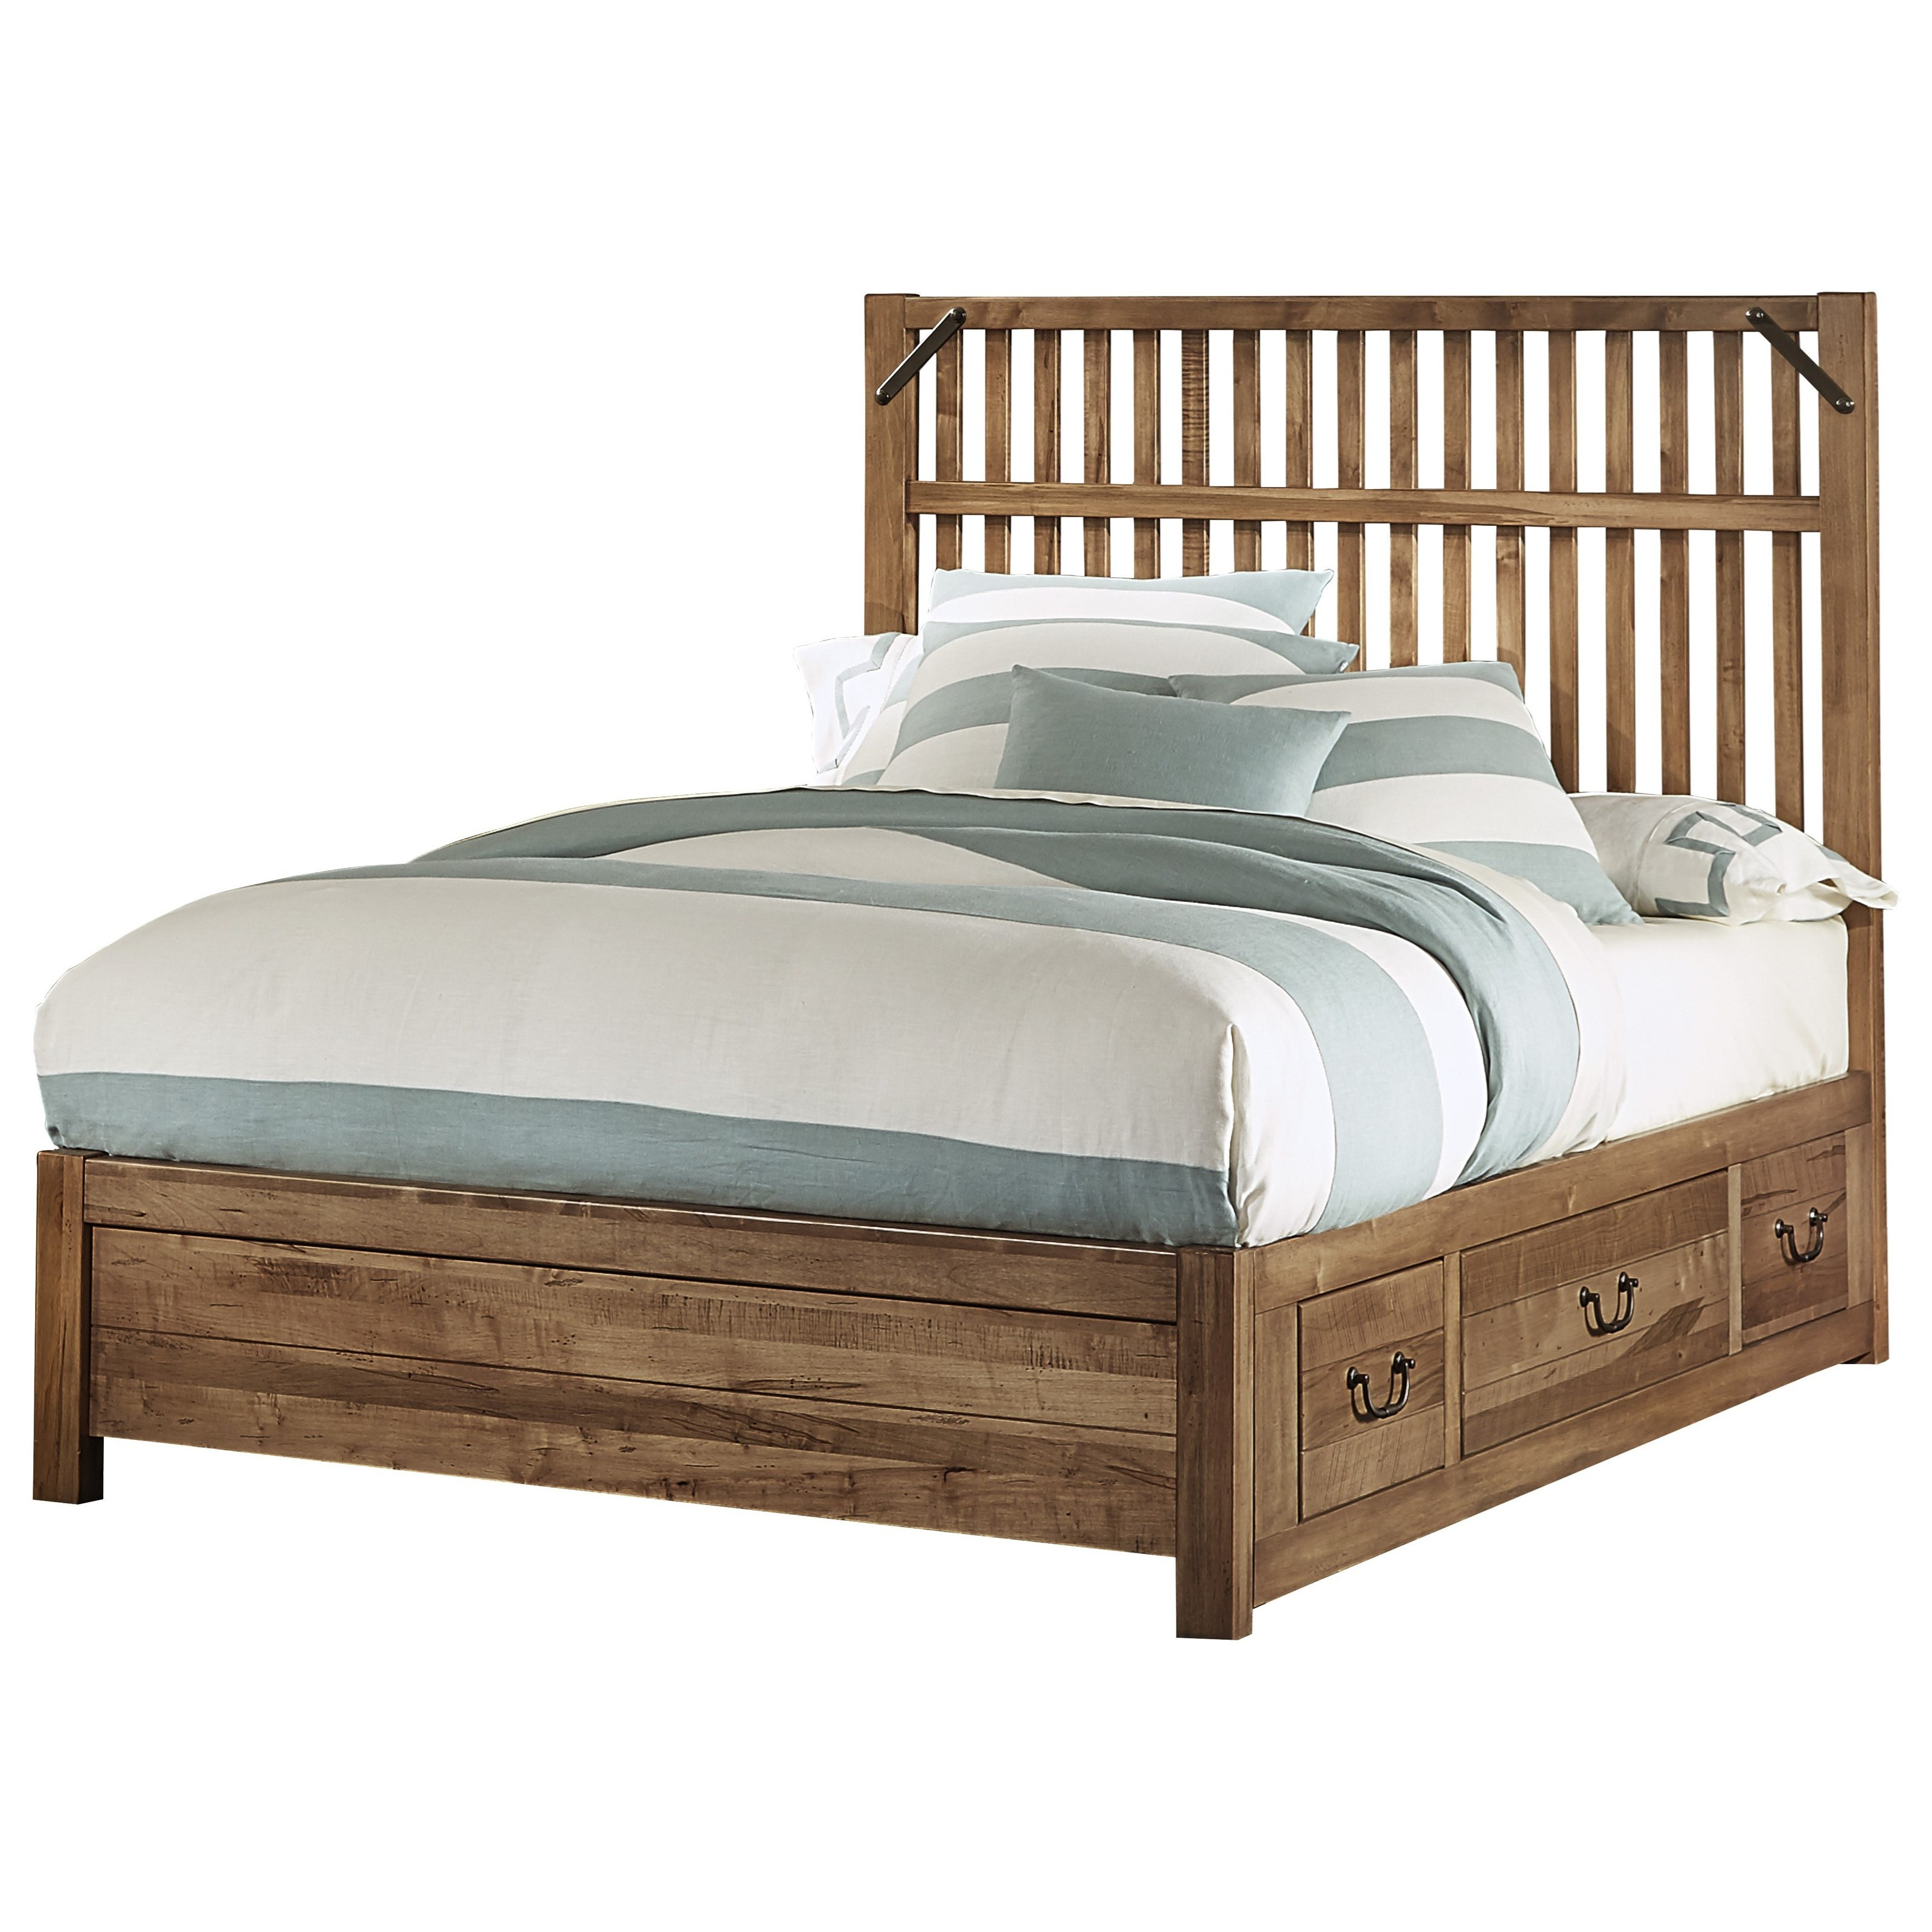 Sedgwick King Bed with Storage by Artisan & Post at Northeast Factory Direct